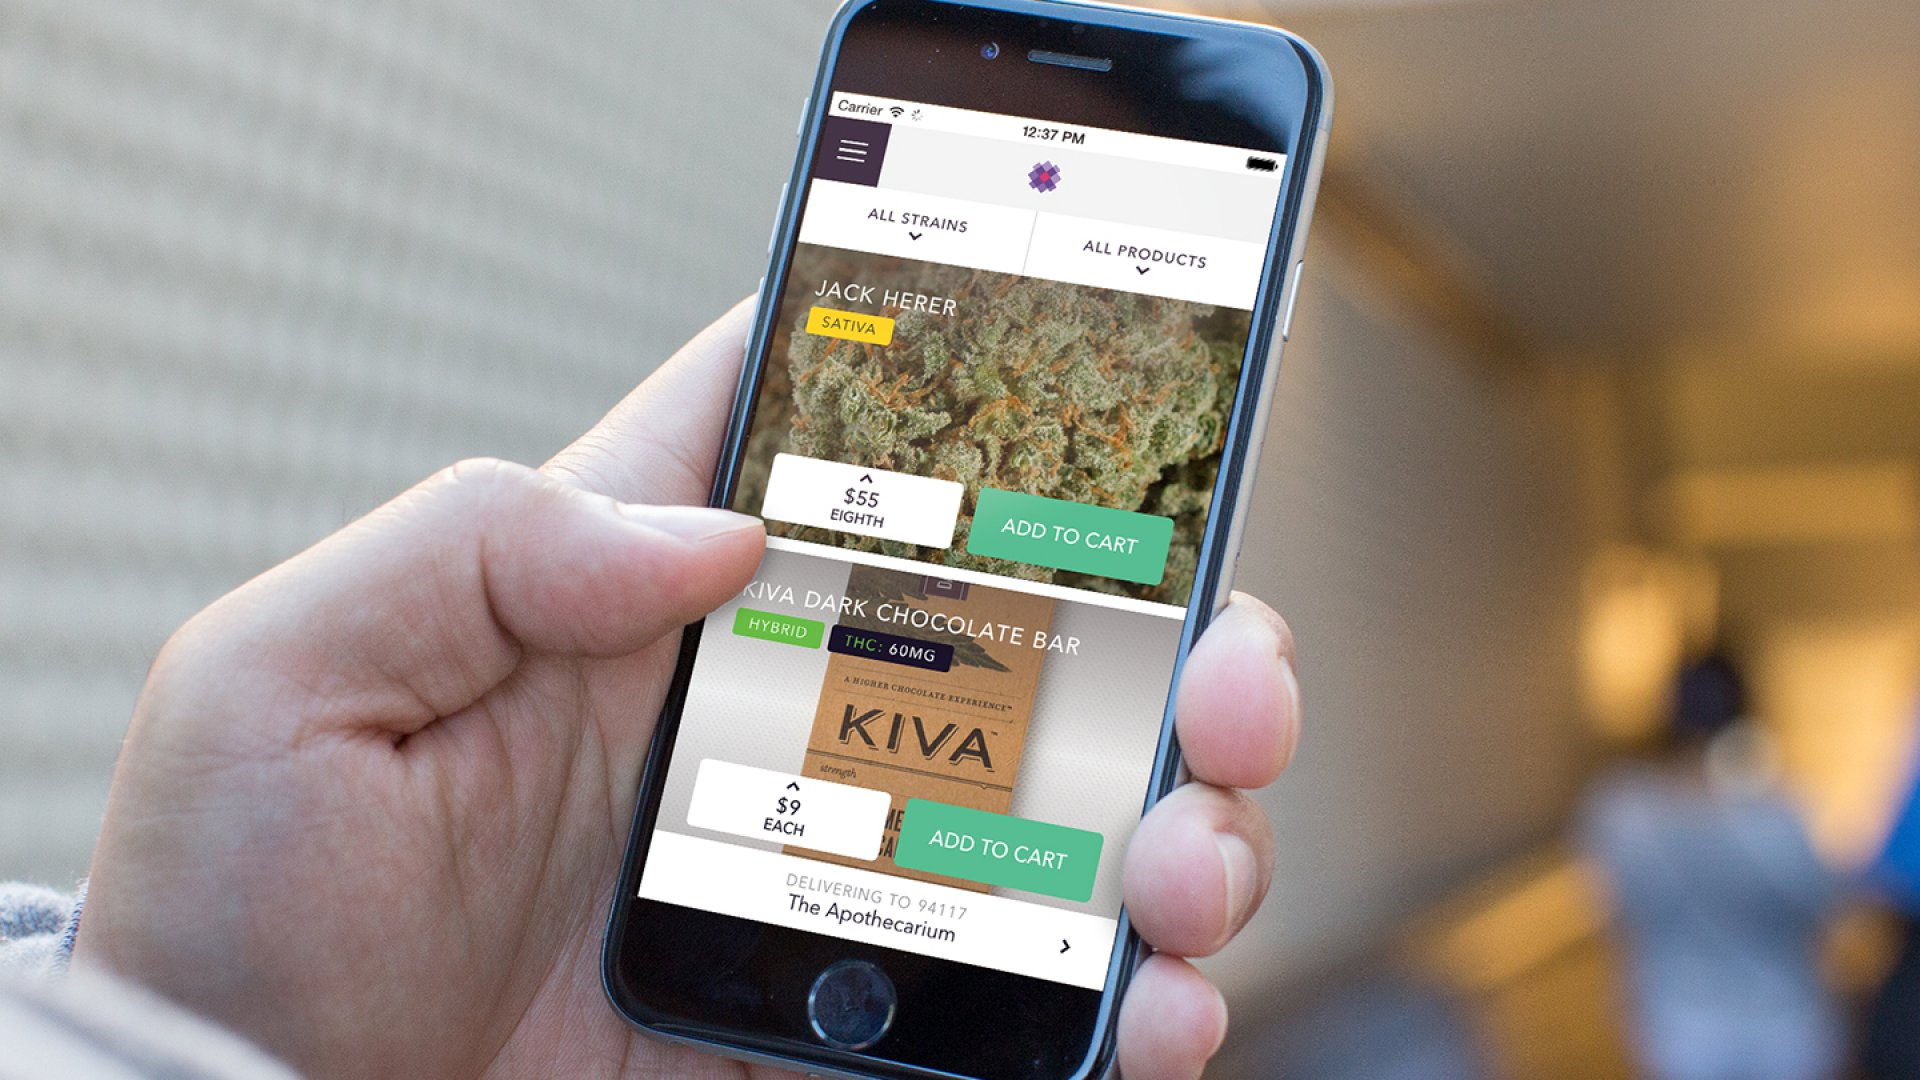 Meadow, a medical-cannabis-delivery app, works just like Uber for card-holding medical cannabis patients. The company recently graduated from Y Combinator's 2015 class and is helping San Francisco dispensaries make more sales and keep compliant with Meadow's enterprise software.